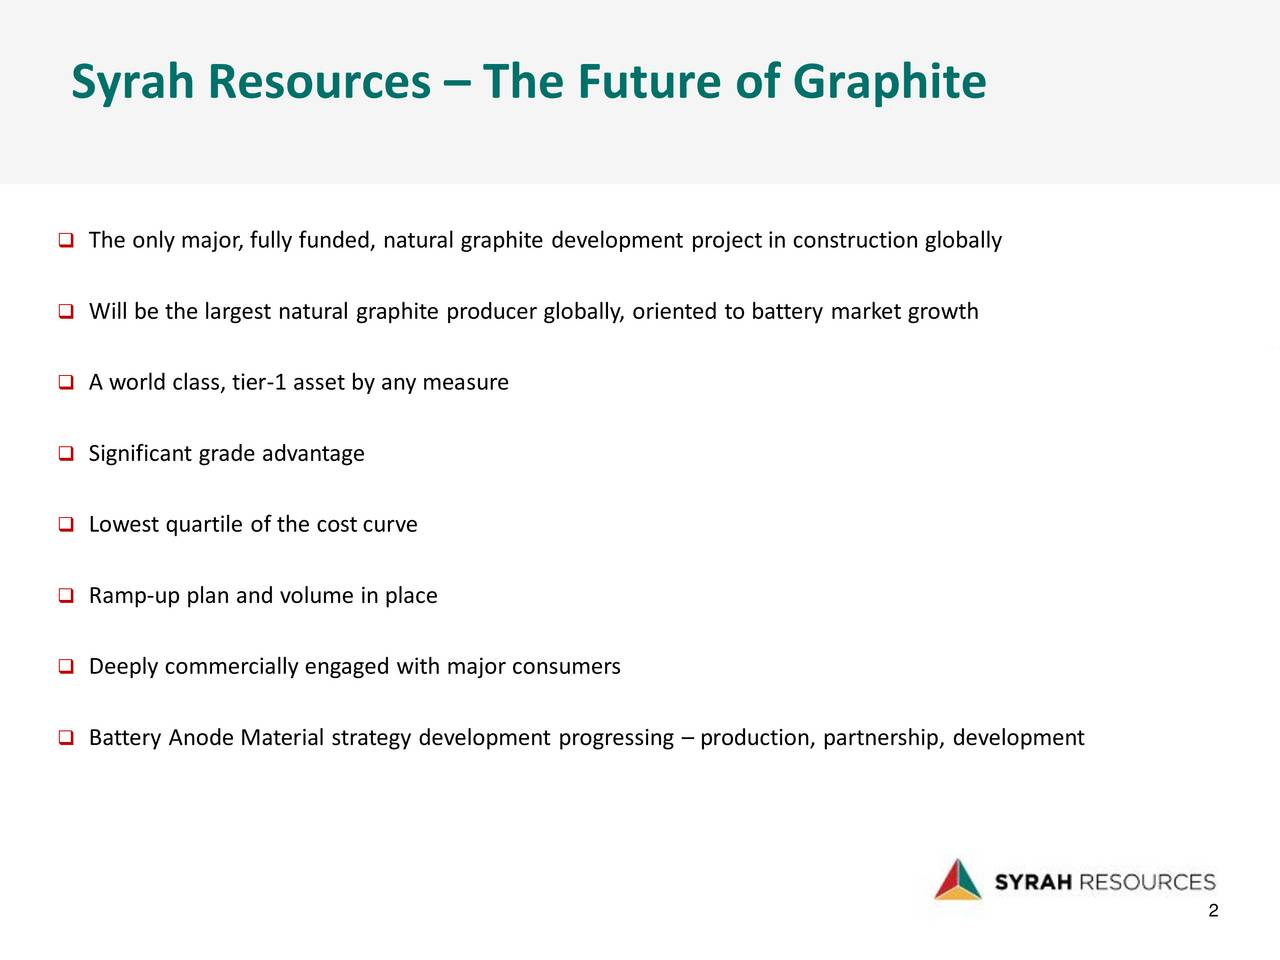 The only major, fully funded, natural graphite development project in construction globally Will be the largest natural graphite producer globally, oriented to battery market growth A world class, tier-1 asset by any measure Significant grade advantage Lowest quartile of the cost curve Ramp-up plan and volume in place Deeply commercially engaged with major consumers Battery Anode Material strategy development progressing  production, partnership, development 22 2